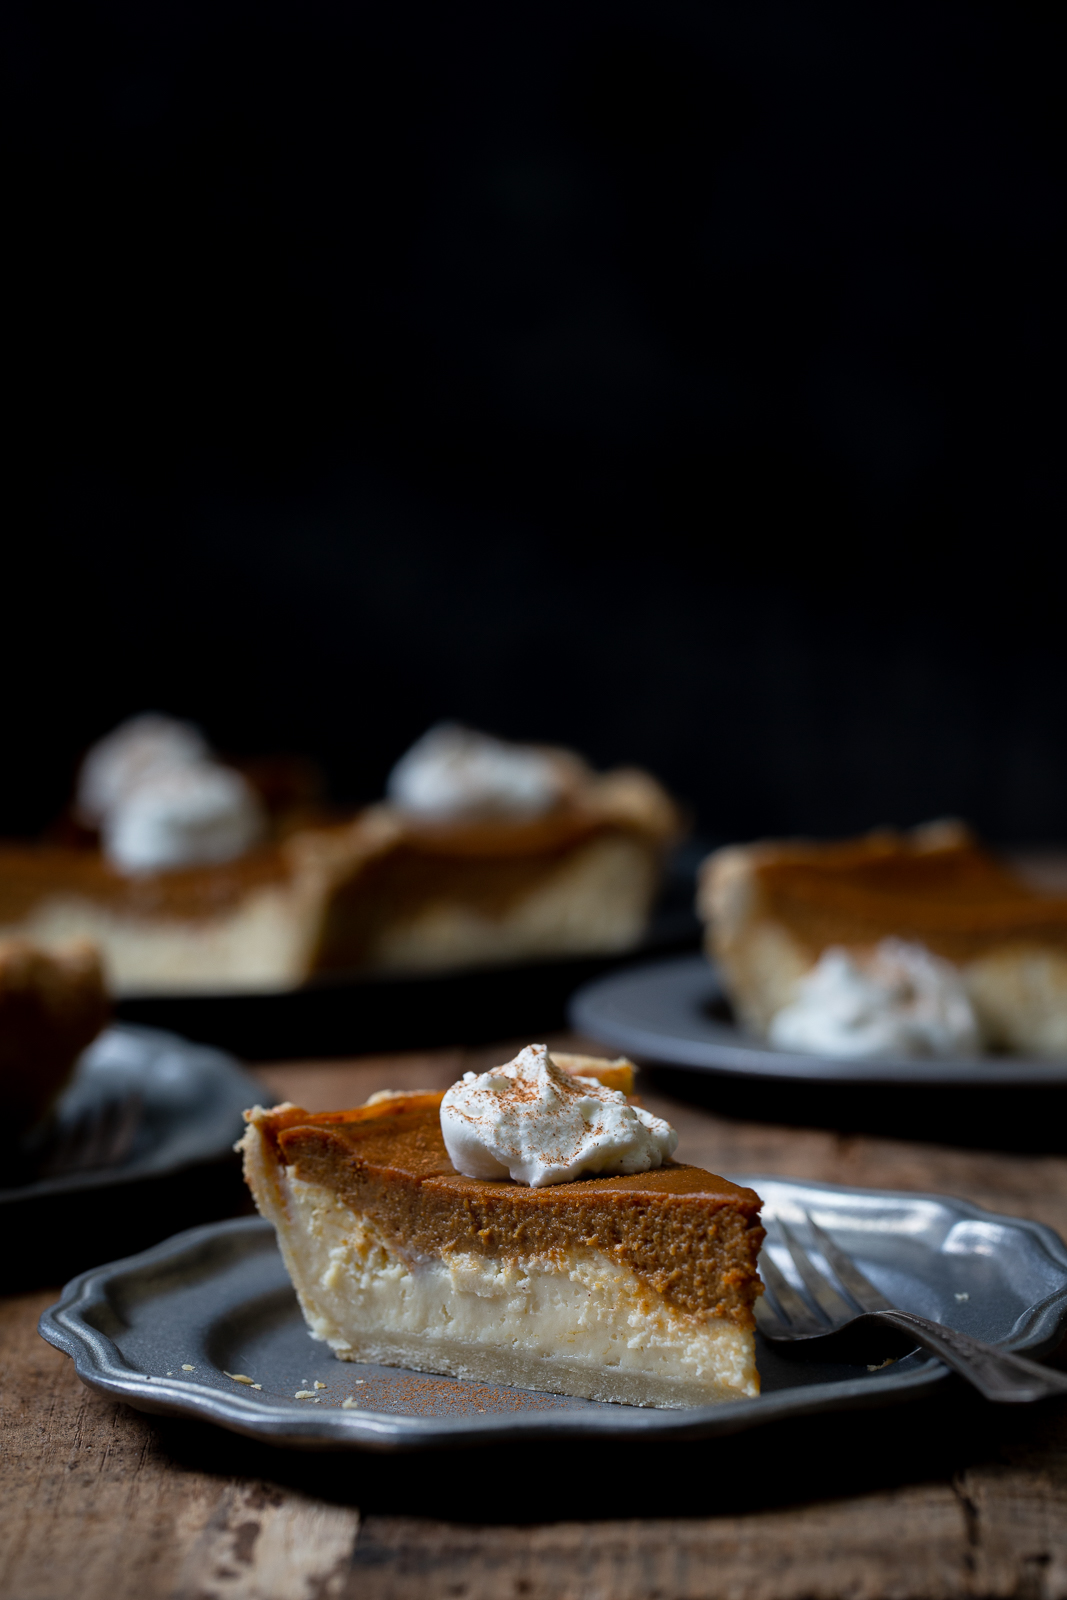 Slice of layered pumpkin cheesecake pie on pewter plate on wooden board with more pie slices in the background.